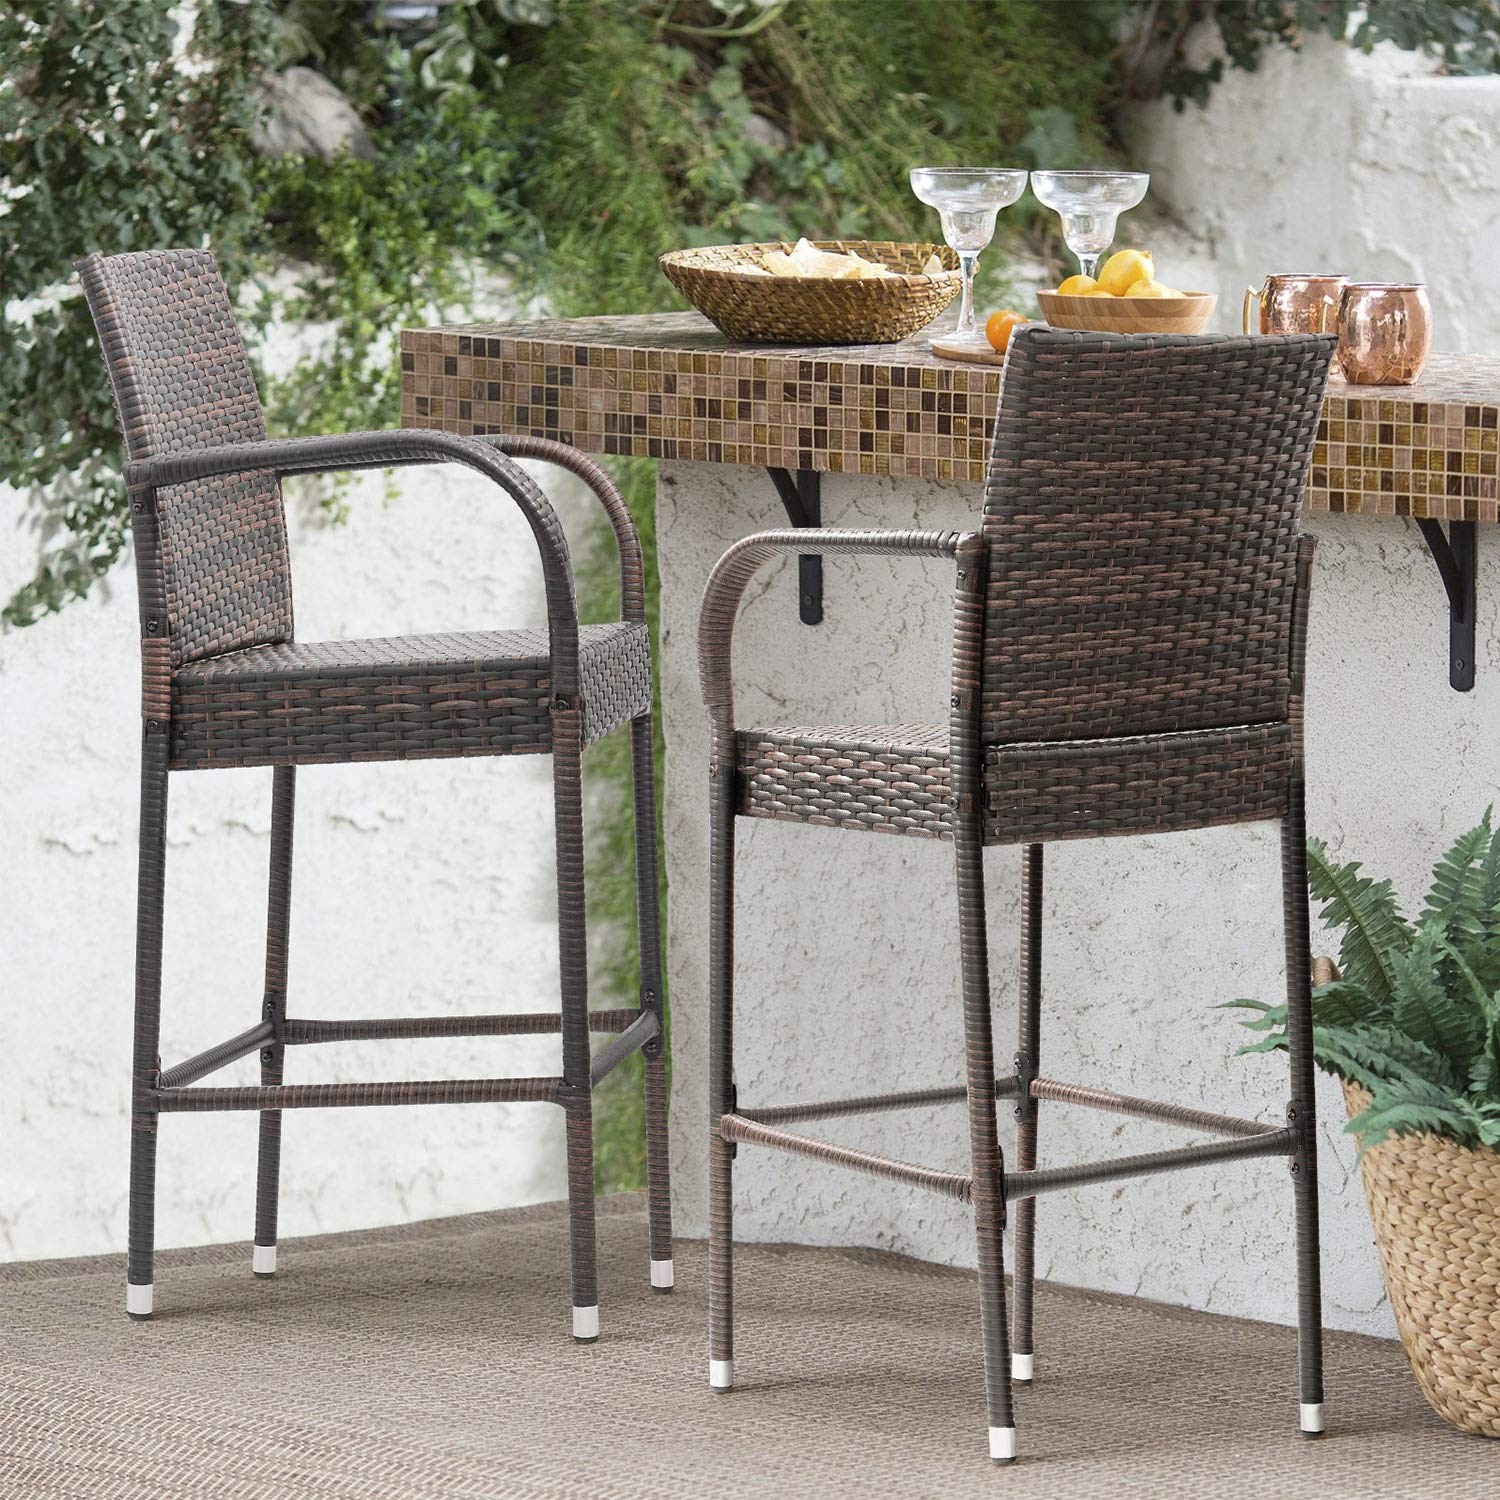 Homall Patio Bar Stools Wicker Barstools Indoor Outdoor Bar Stool Patio Furniture with Footrest and Armrest for Garden Pool Lawn Backyard Set of 2 (Brown) by Homall (Image #4)